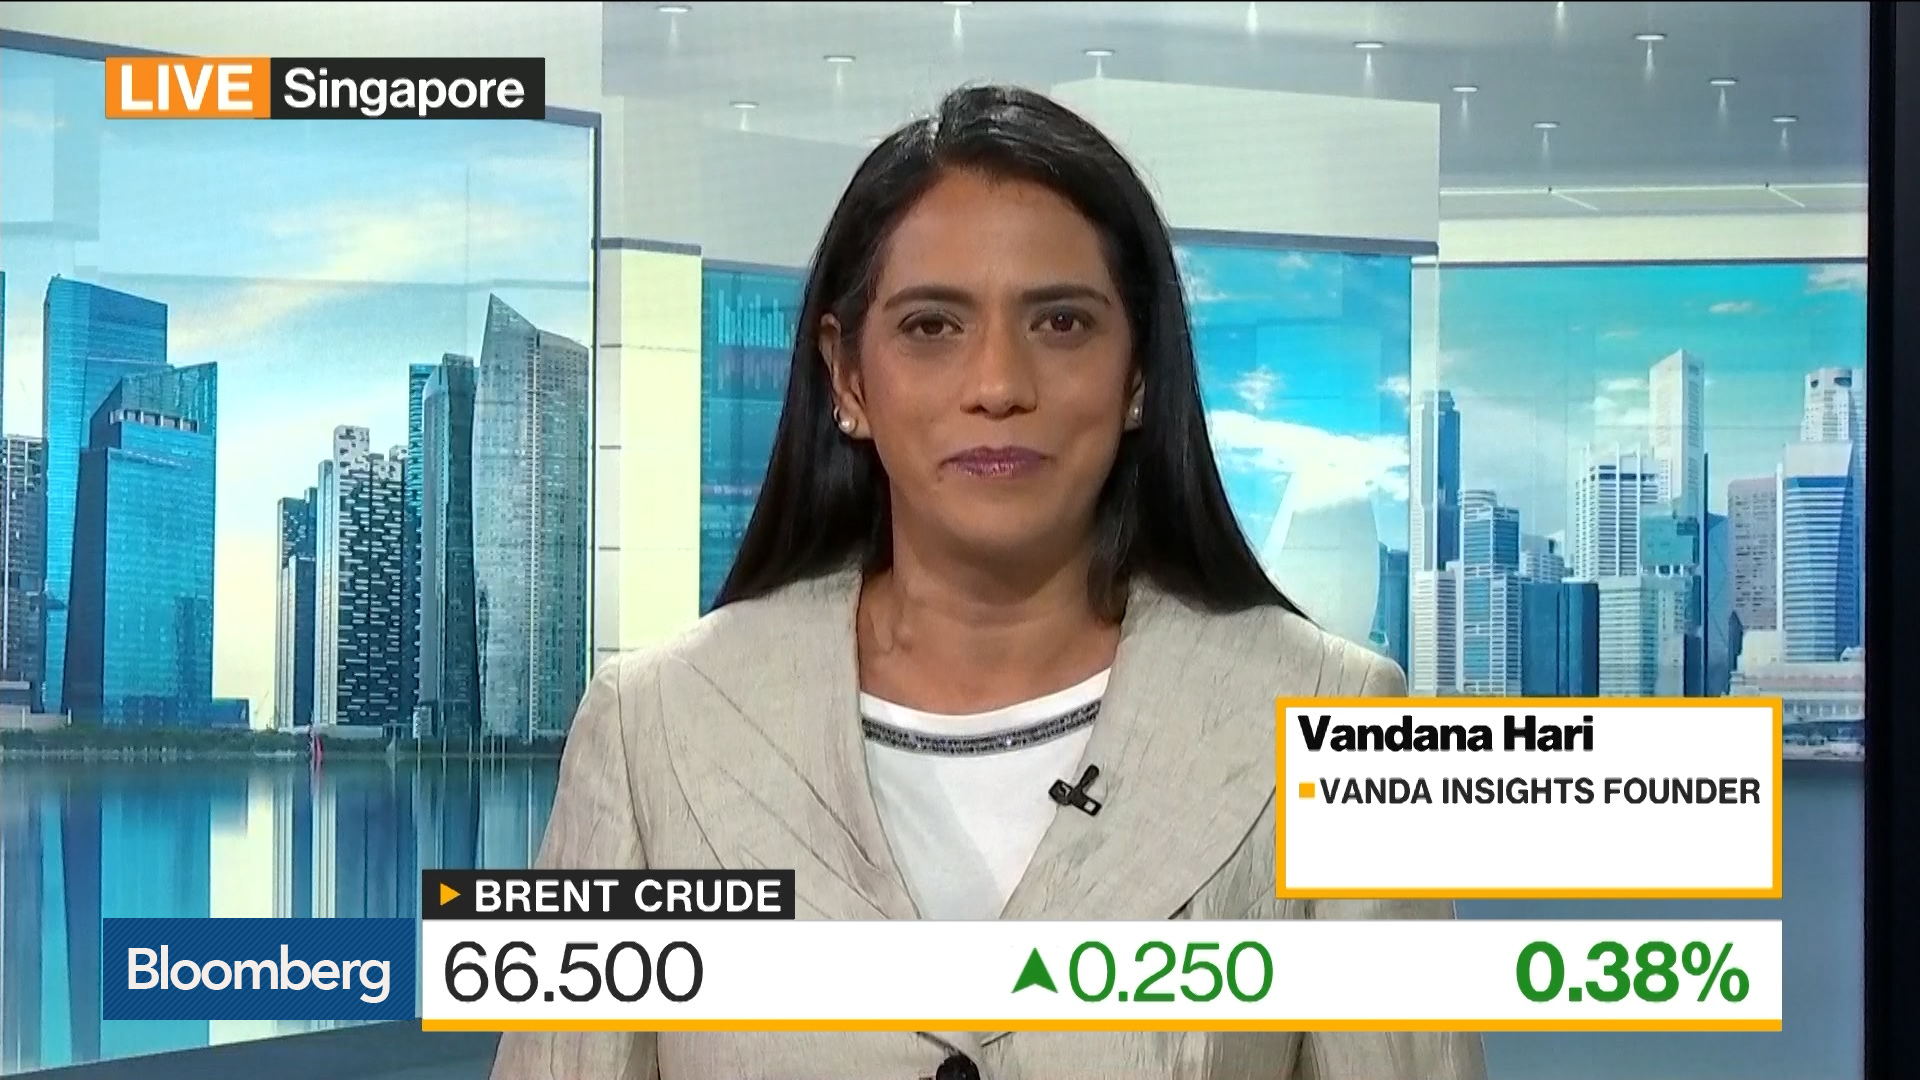 Saudis Are Overtightening the Oil Market Again, Says Vanda Insights's Hari